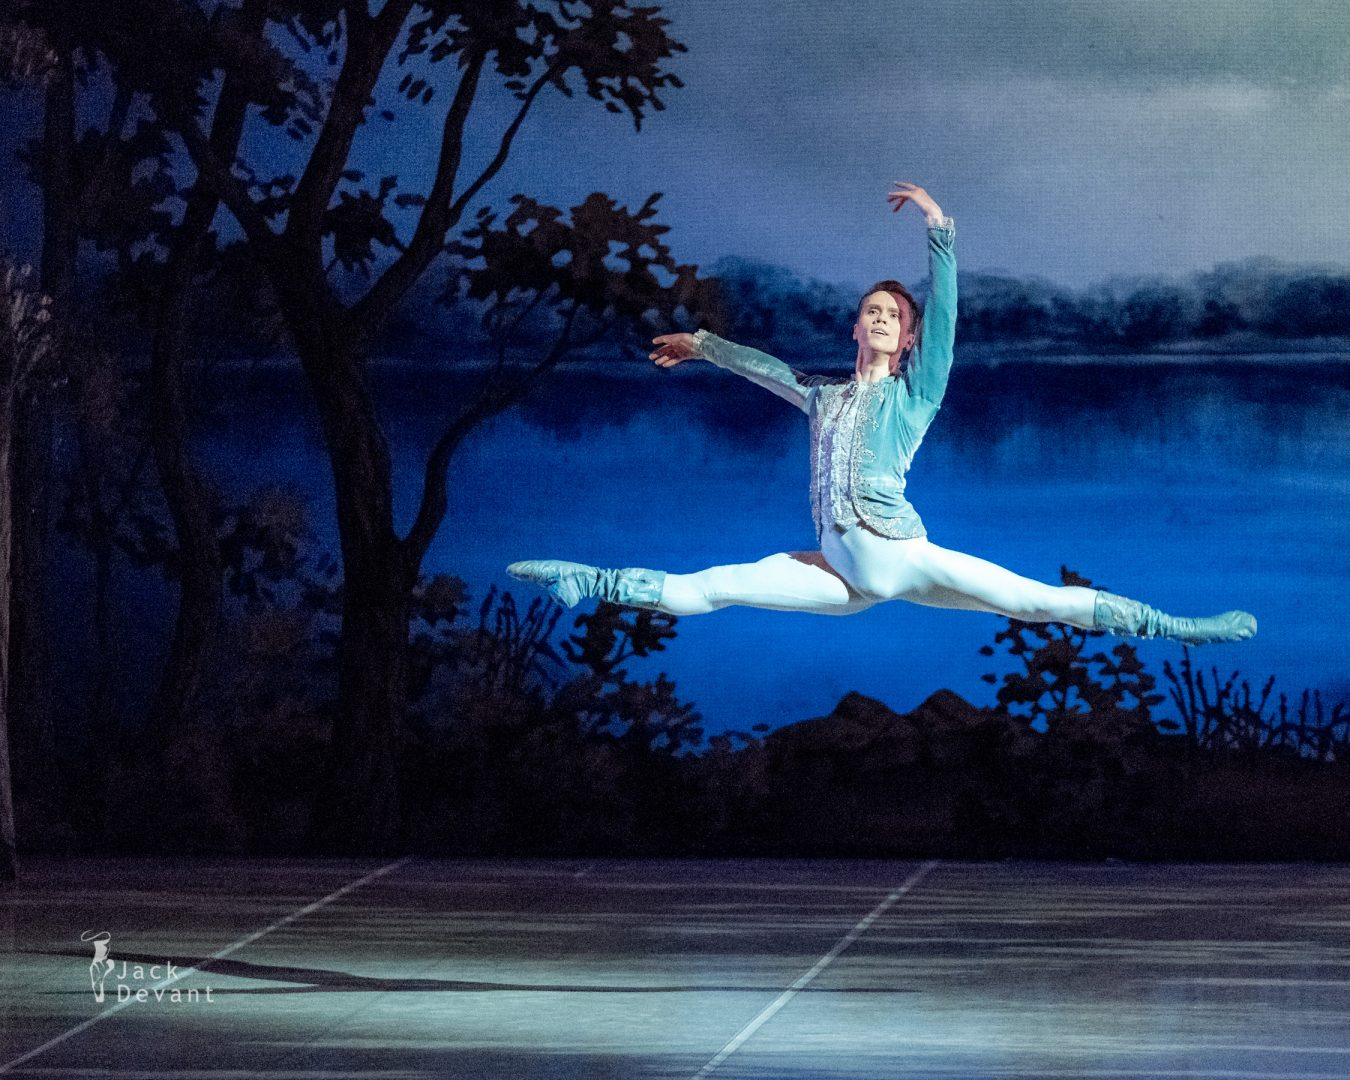 The Sleeping Beauty Prince Desire — Leonid Sarafanov (Леонид Сарафанов) 5